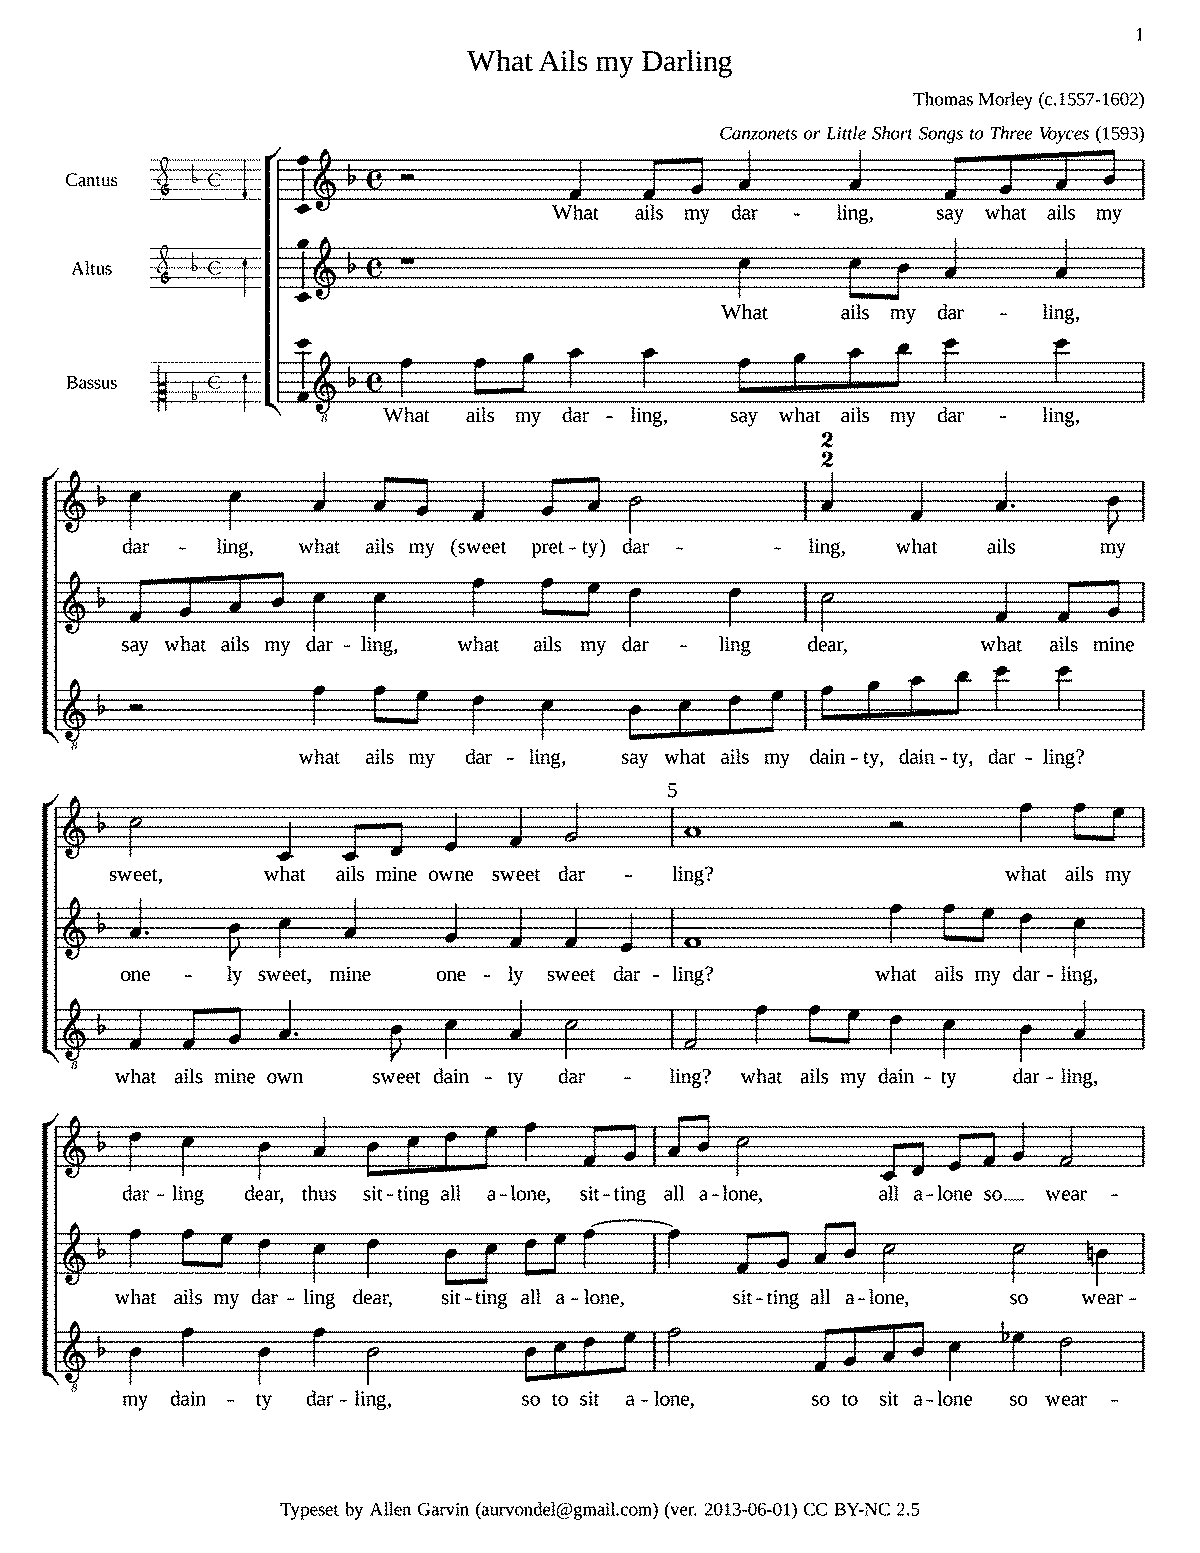 PMLP447937-18-what ails my darling---0-score.pdf